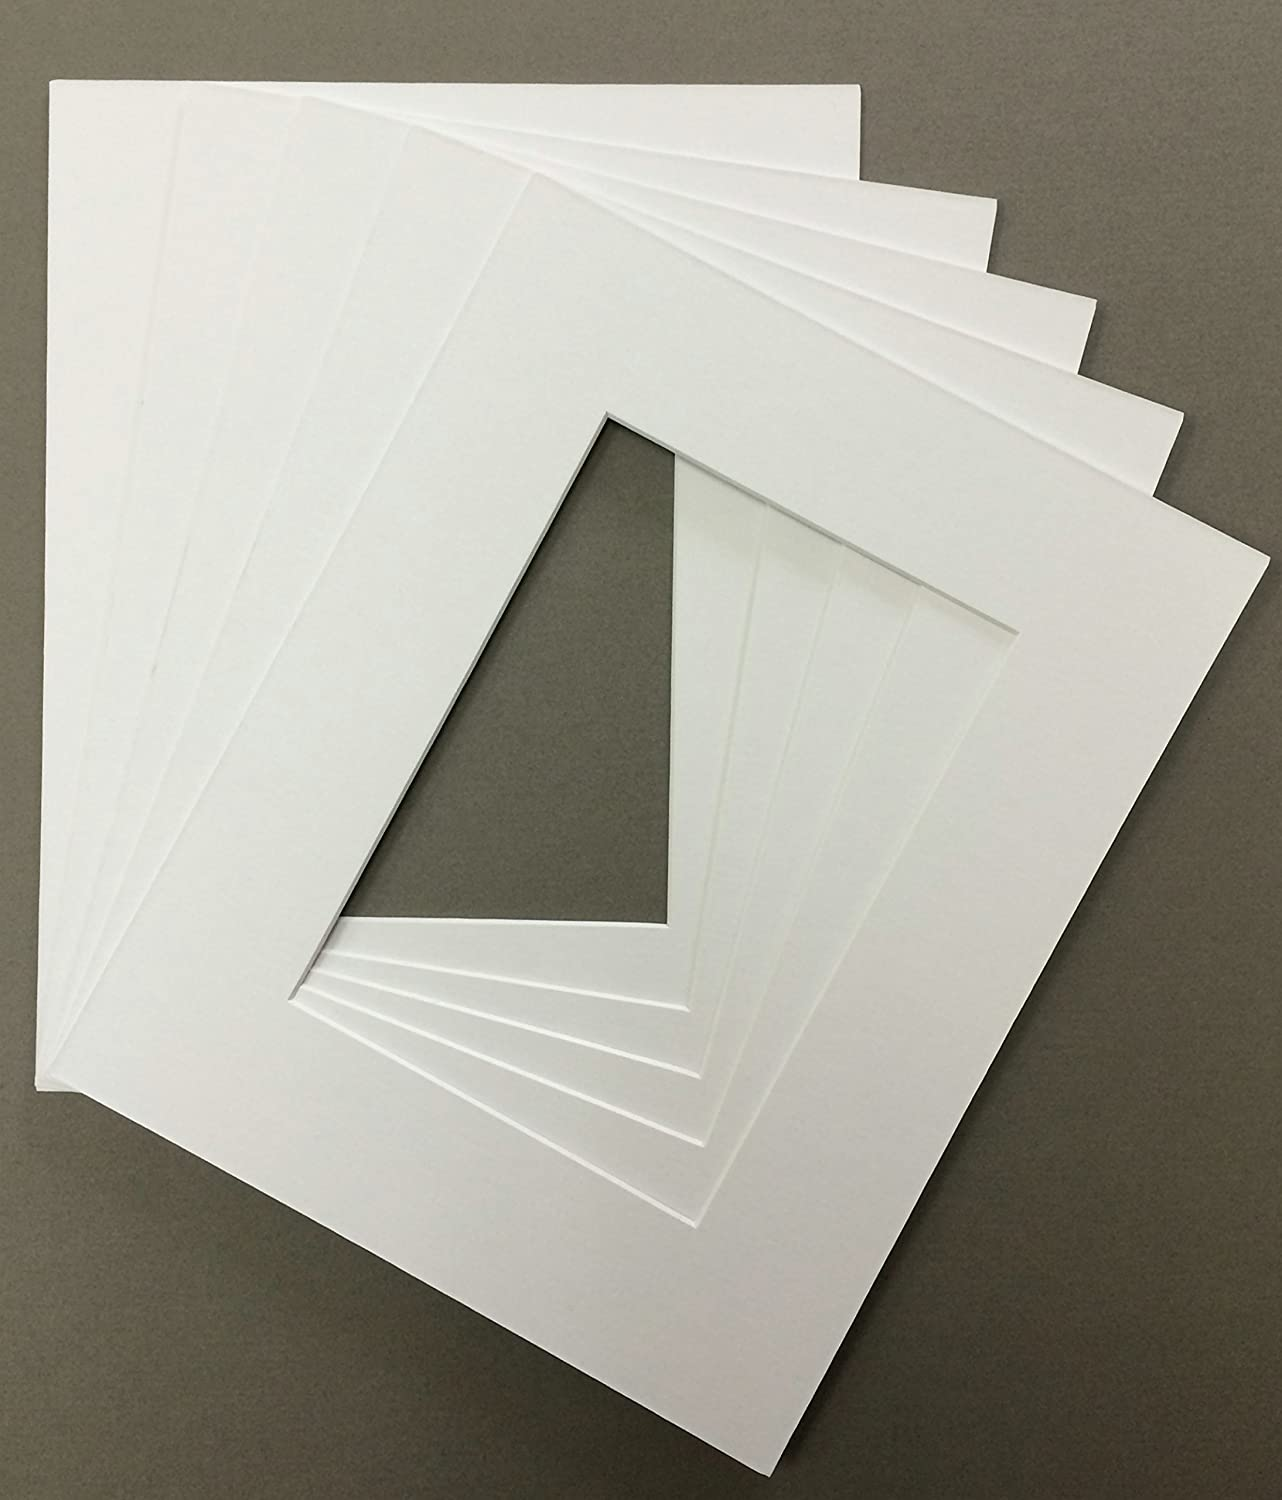 Pack of 5 18x24 White Financial sales sale Picture Matting with Financial sales sale Cor Mats Mattes